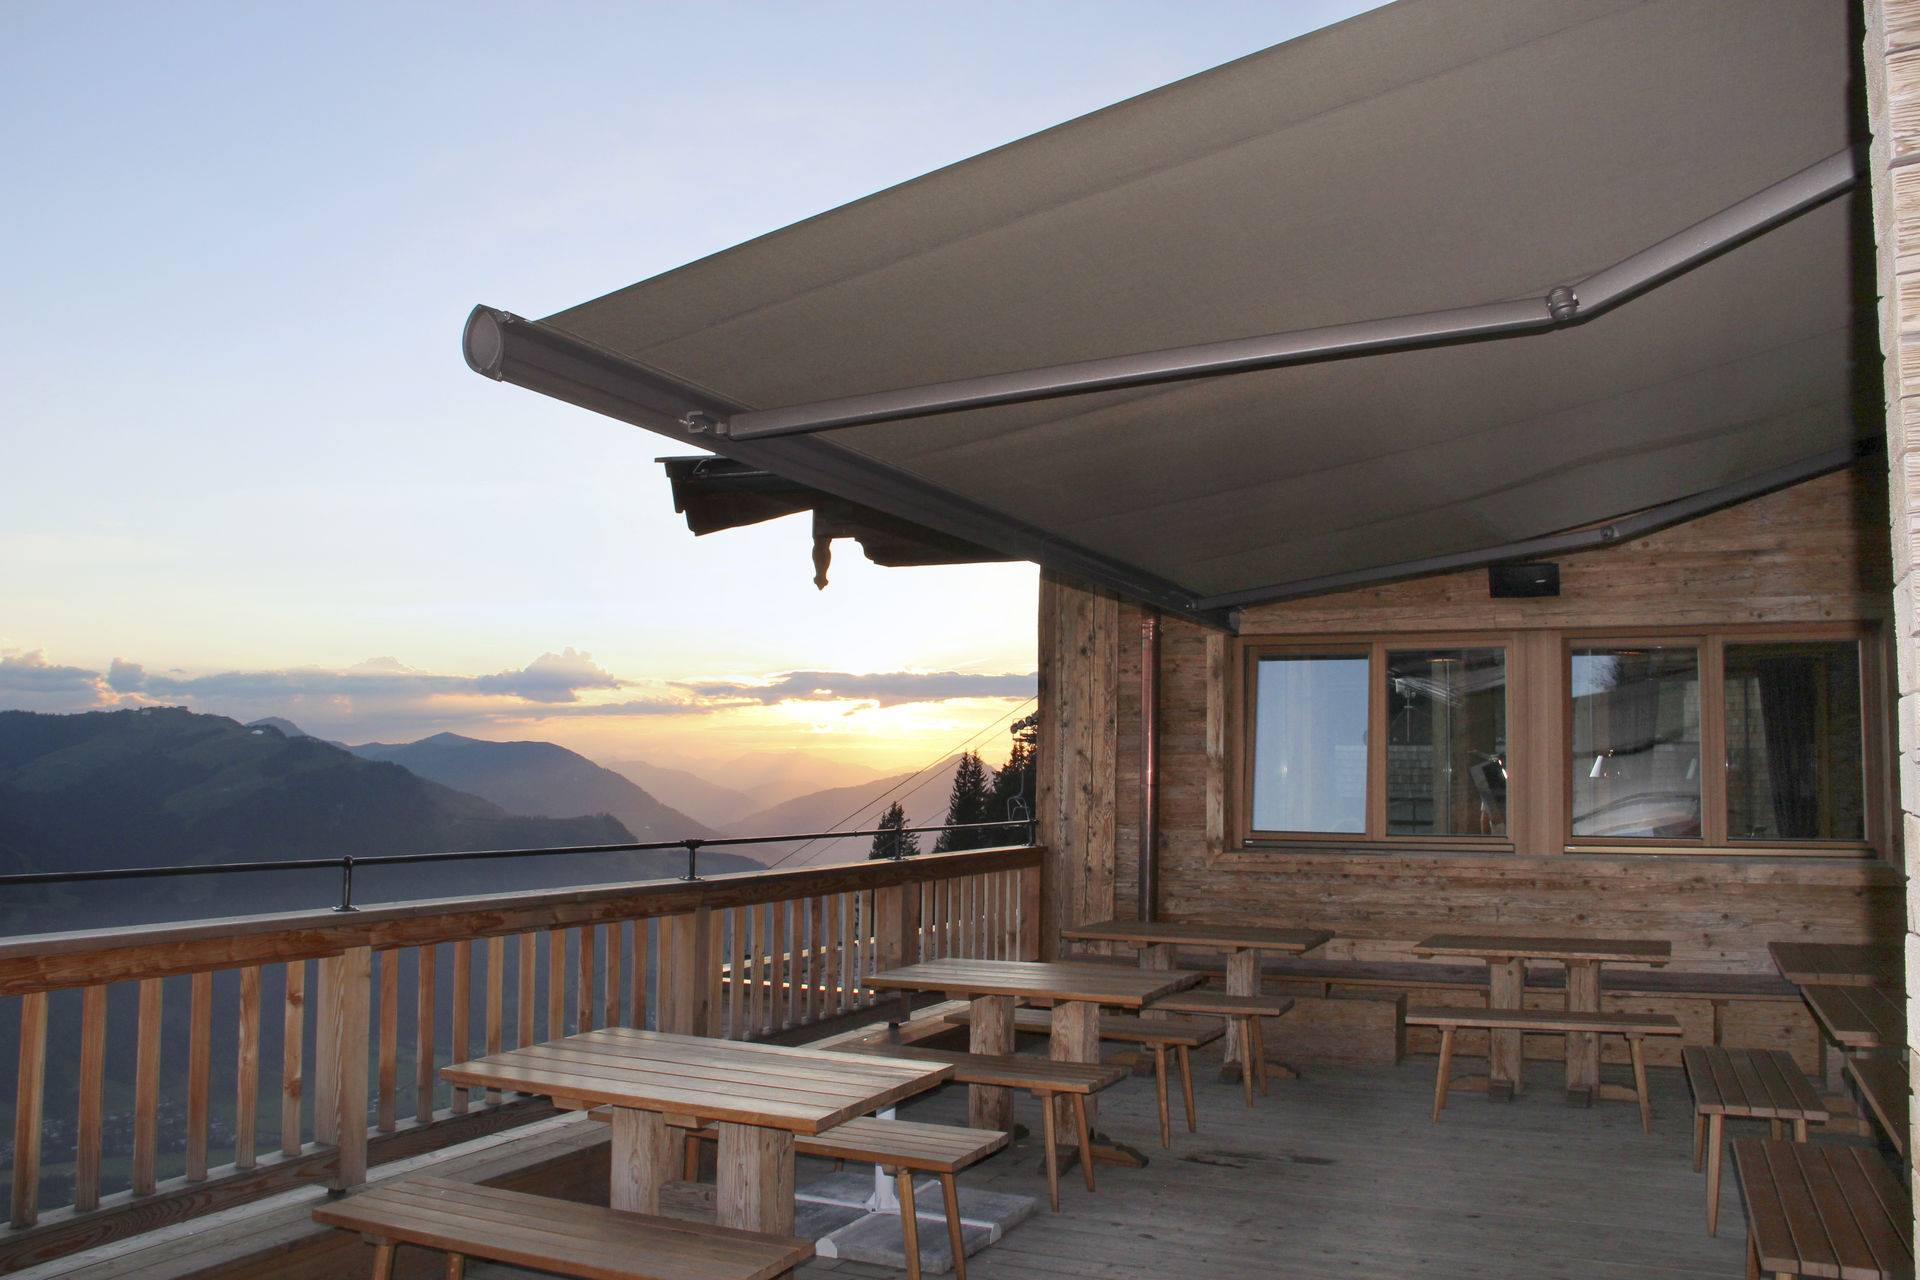 <p>Markilux Awnings Solar Protection 6000 Award Winning</p> <p> </p> <p>Award winning design ideally suited for large hospitality spaces</p>